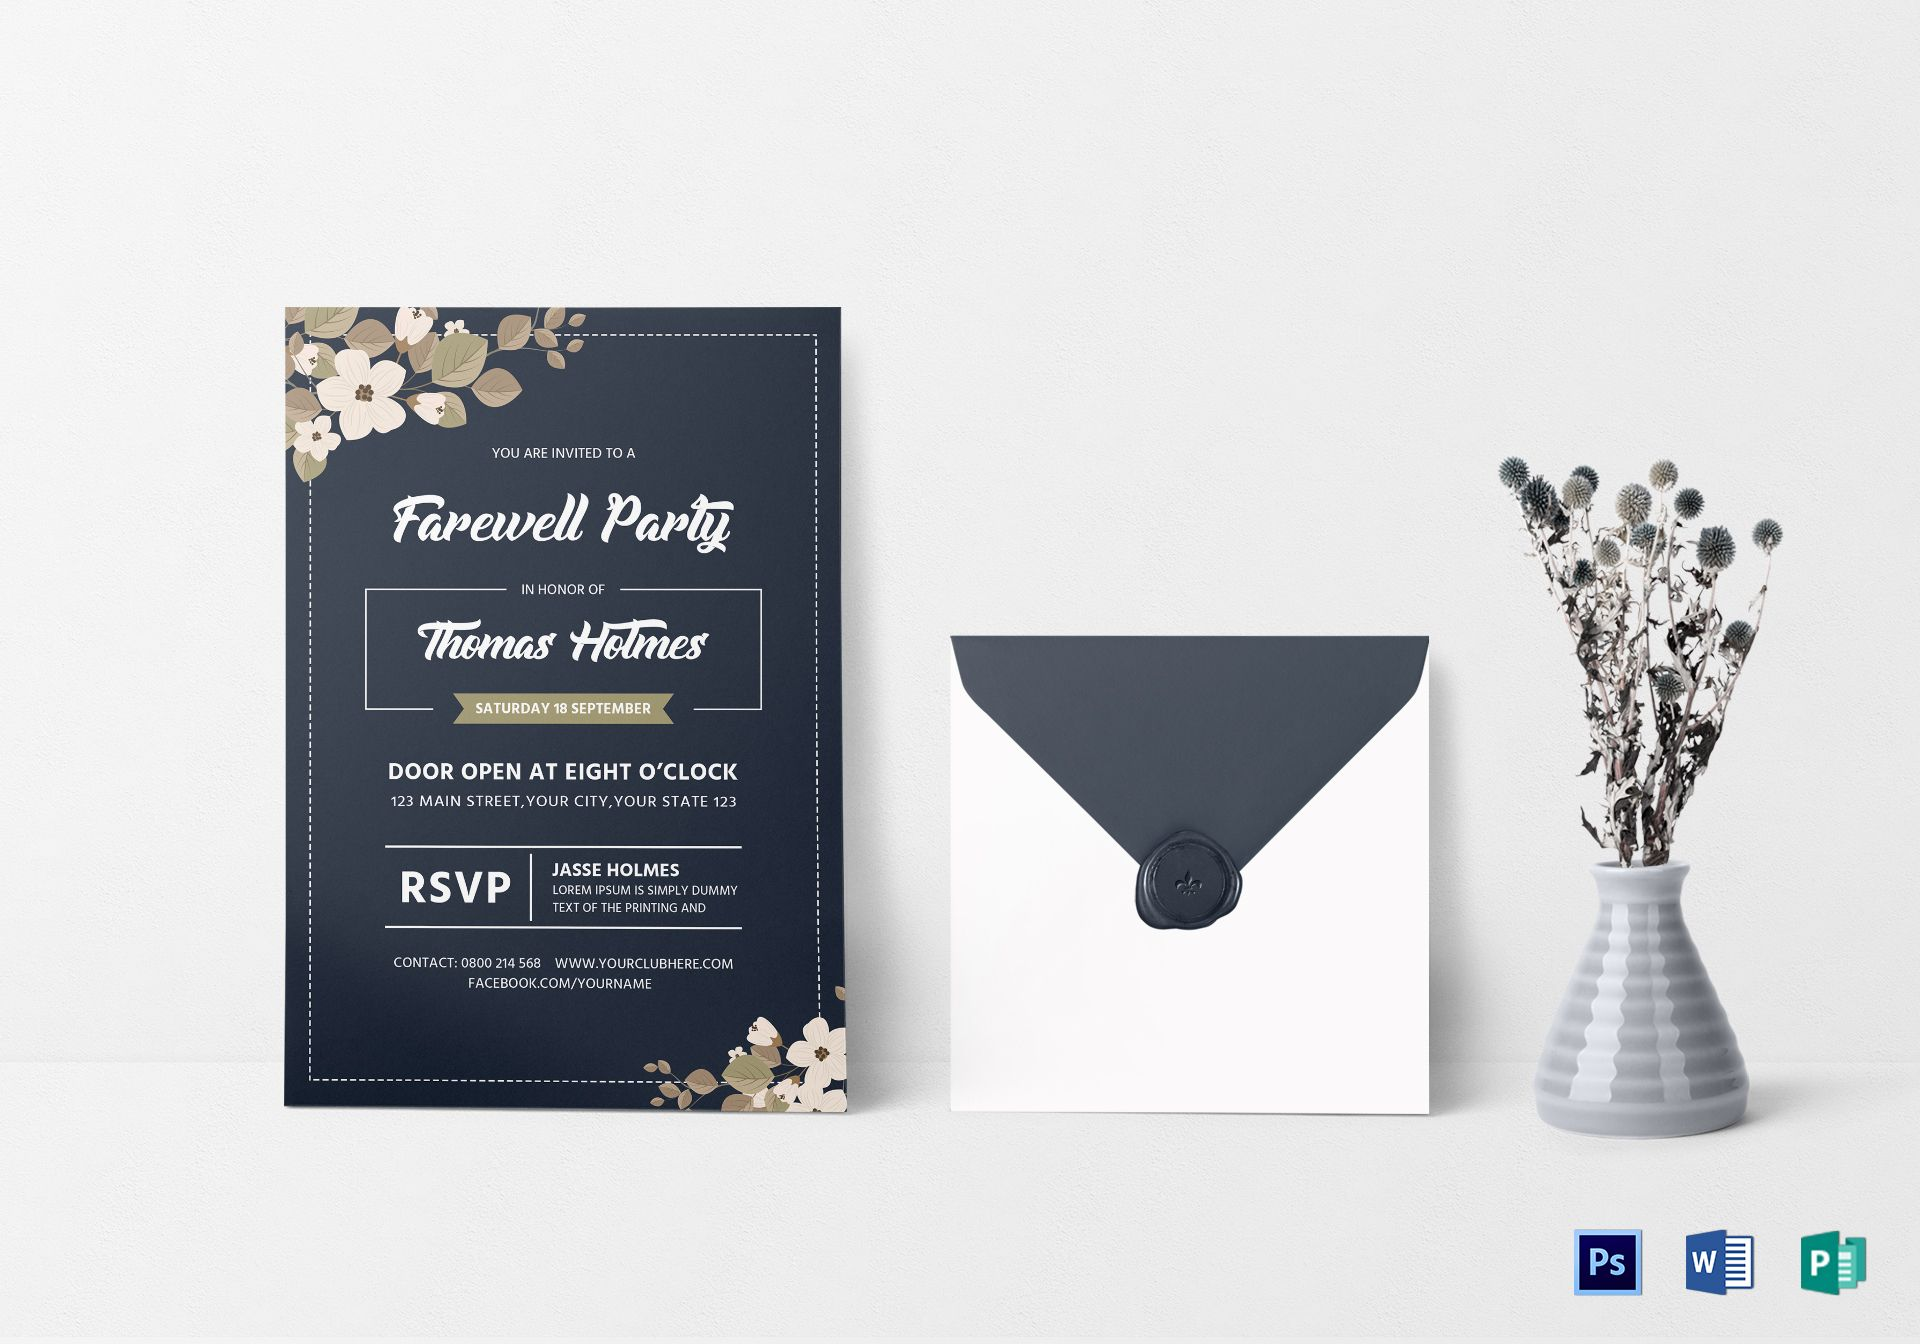 The Fascinating Farewell Party Invitation Card Template Inside Farewell Invitation C Farewell Invitation Card Farewell Party Invitations Invitation Card Design